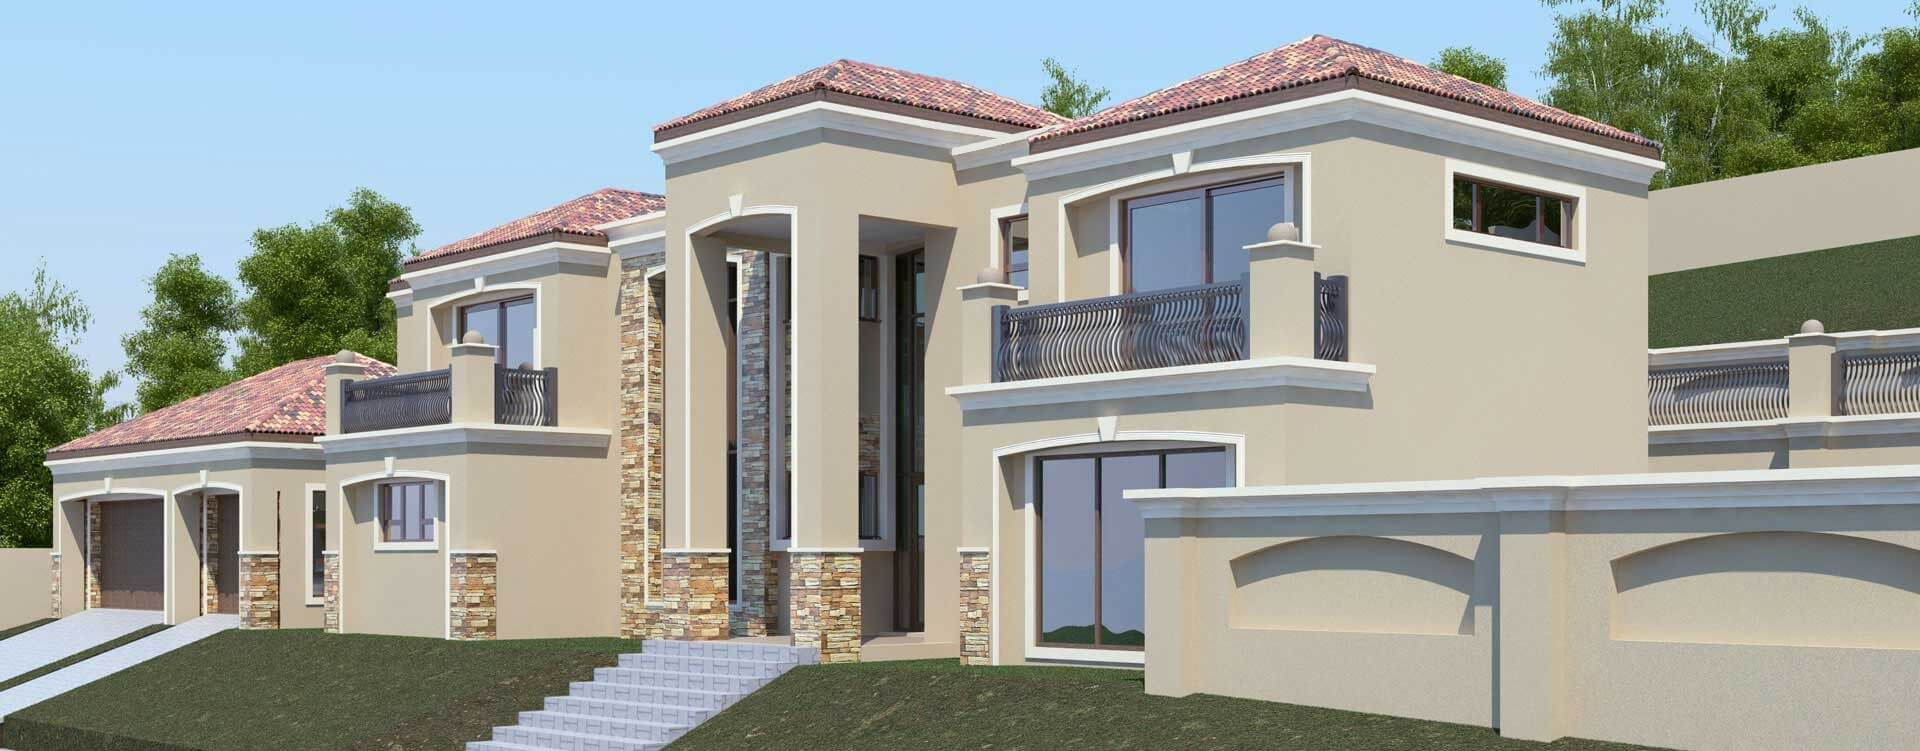 Nethouseplans affordable house plans for Modern 5 bedroom house floor plans